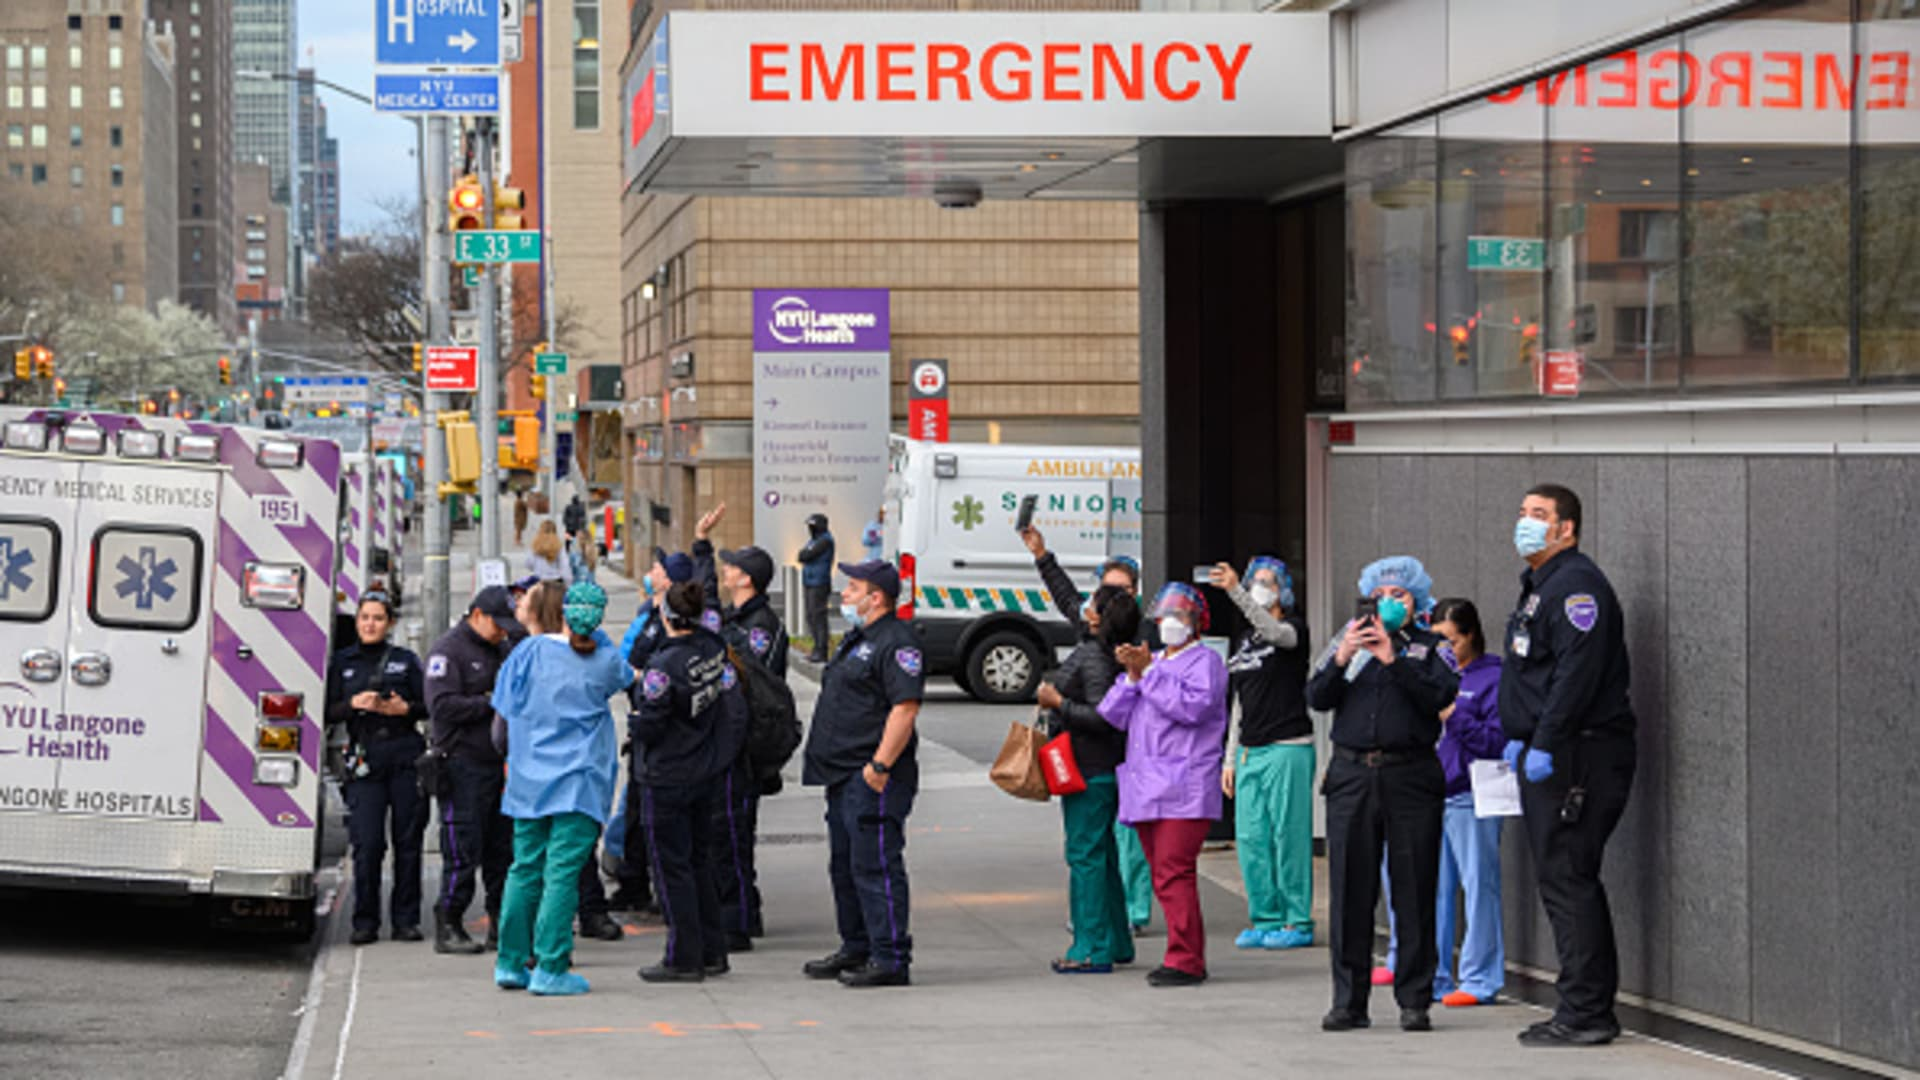 Medical personnel are seen outside NYU Langone Health hospital as people applaud to show their gratitude to medical staff and essential workers working on the front lines of the coronavirus pandemic as the country works to stop the spread of COVID-19 on April 4, 2020 in New York City.